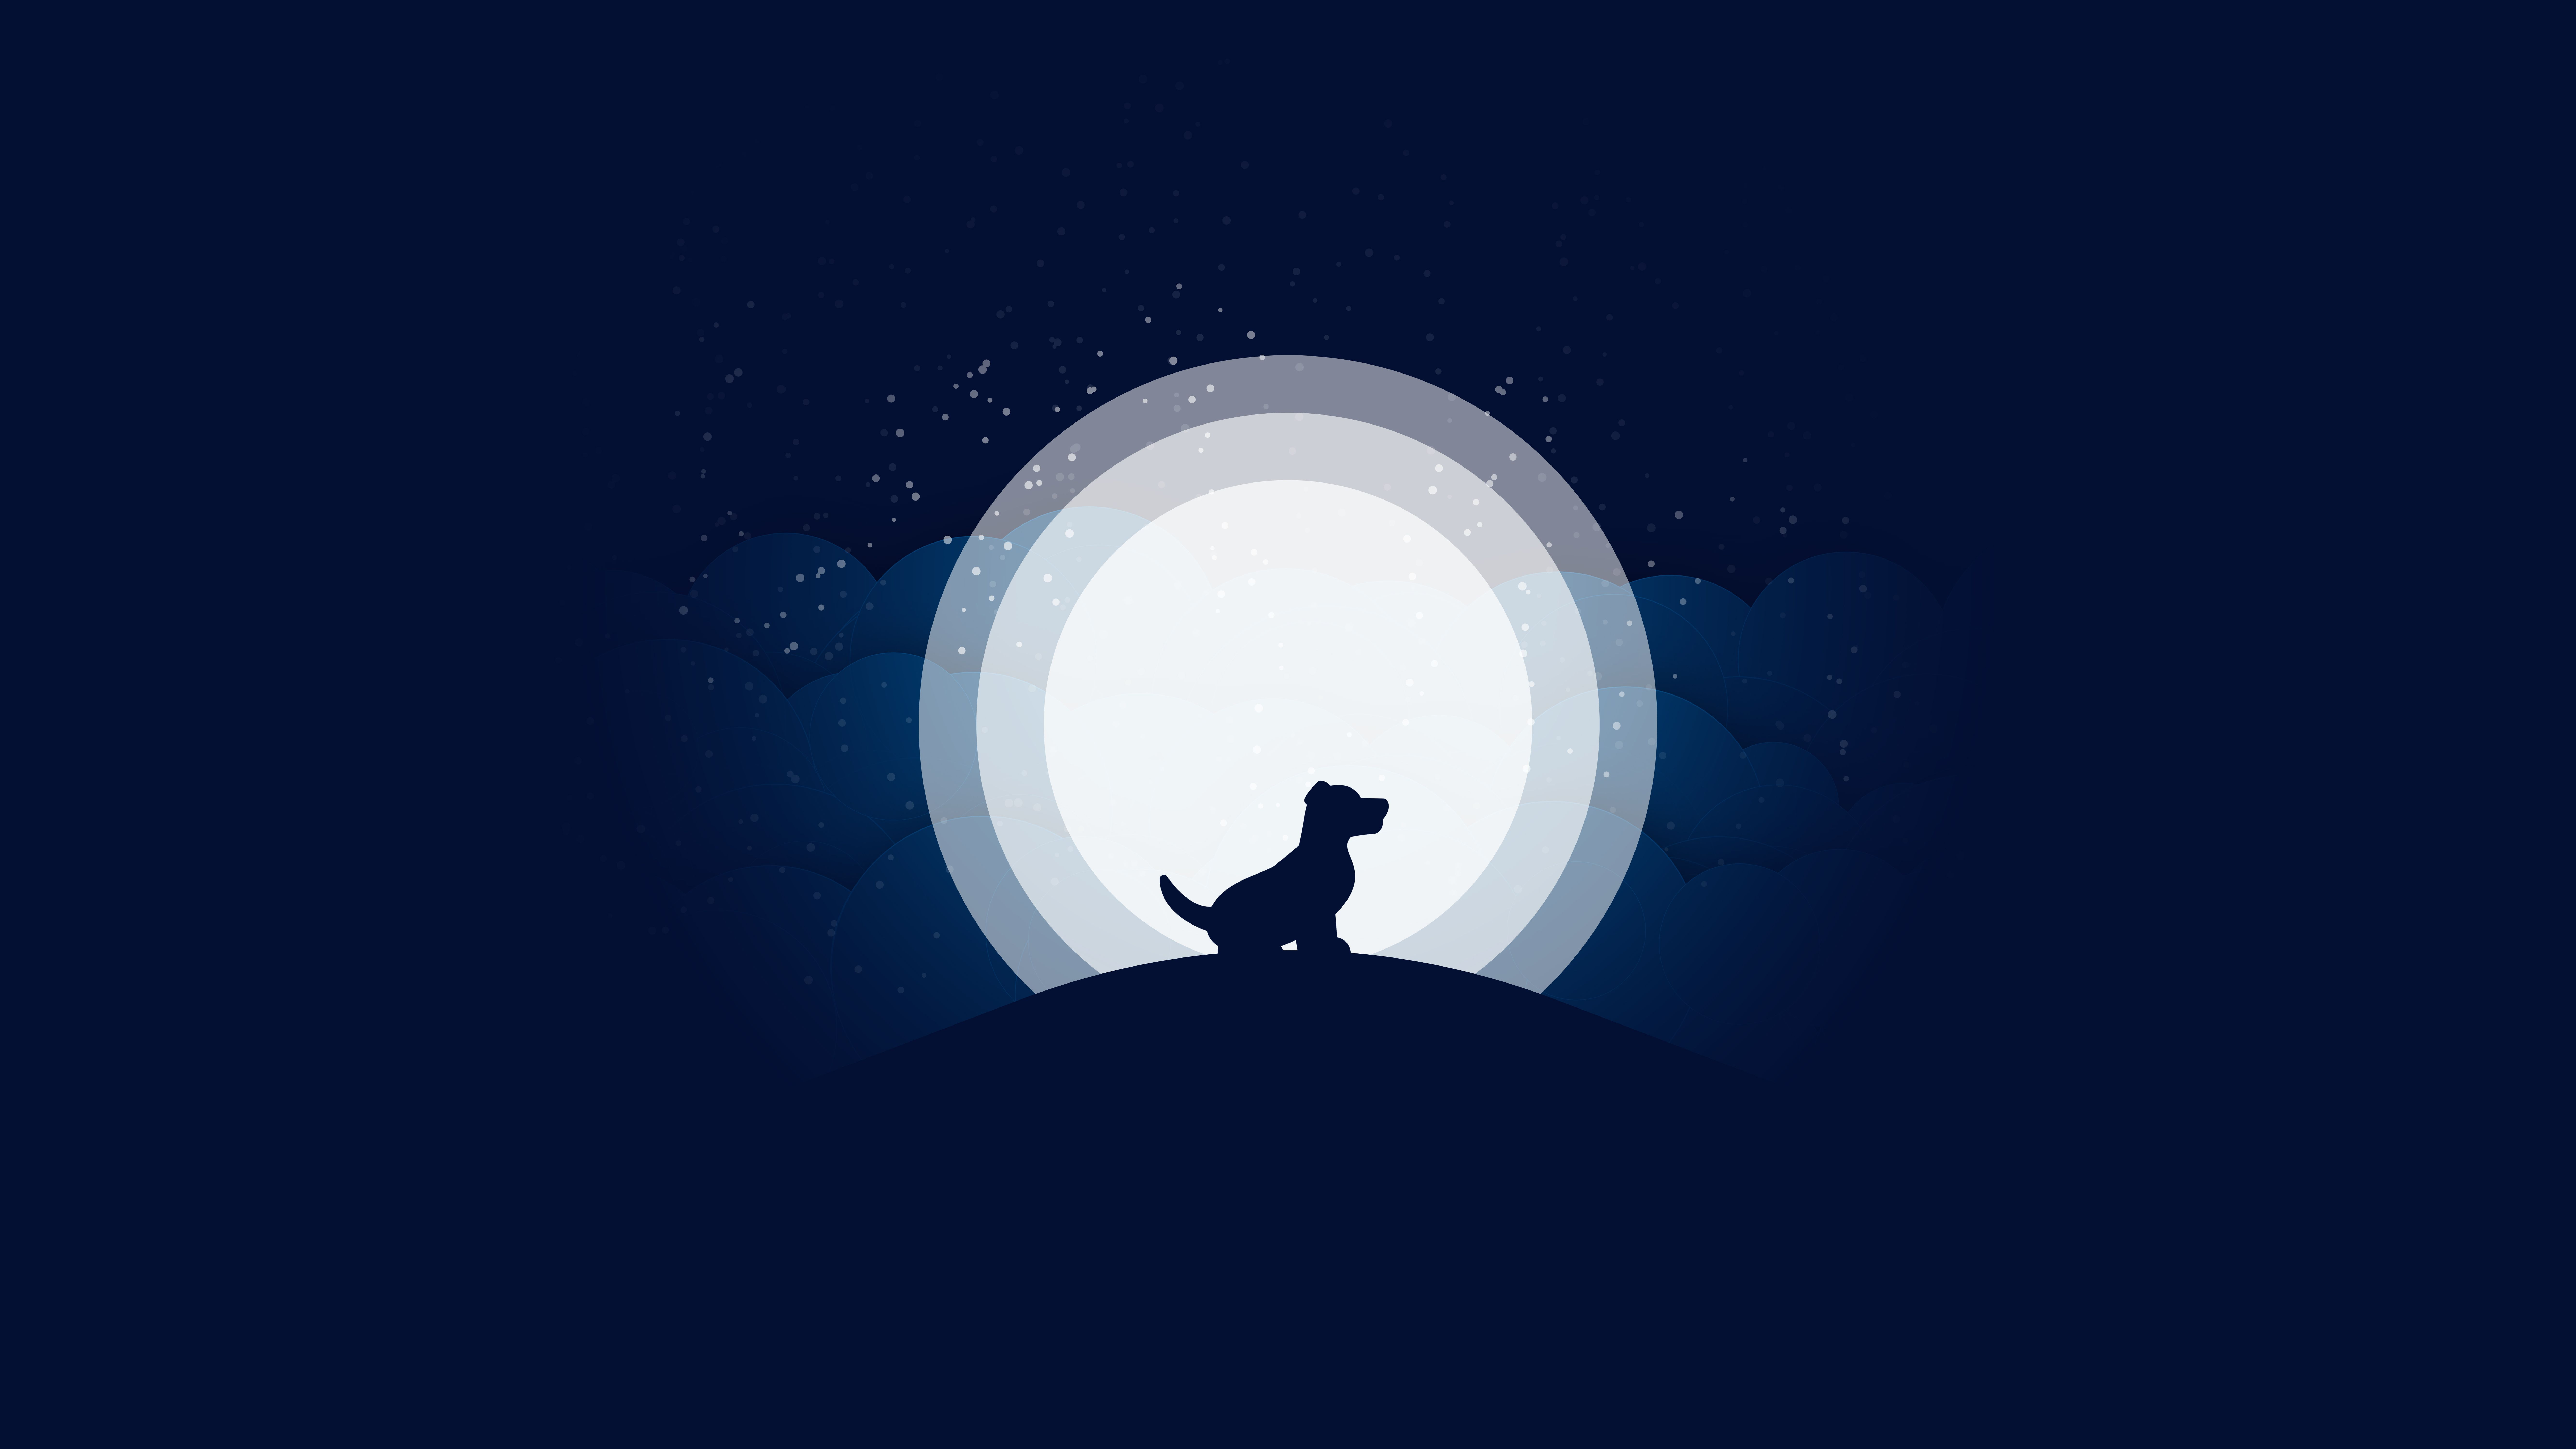 10667x6000 Dog Moon Abstract 10k, HD Artist, 4k Wallpapers, Images ...